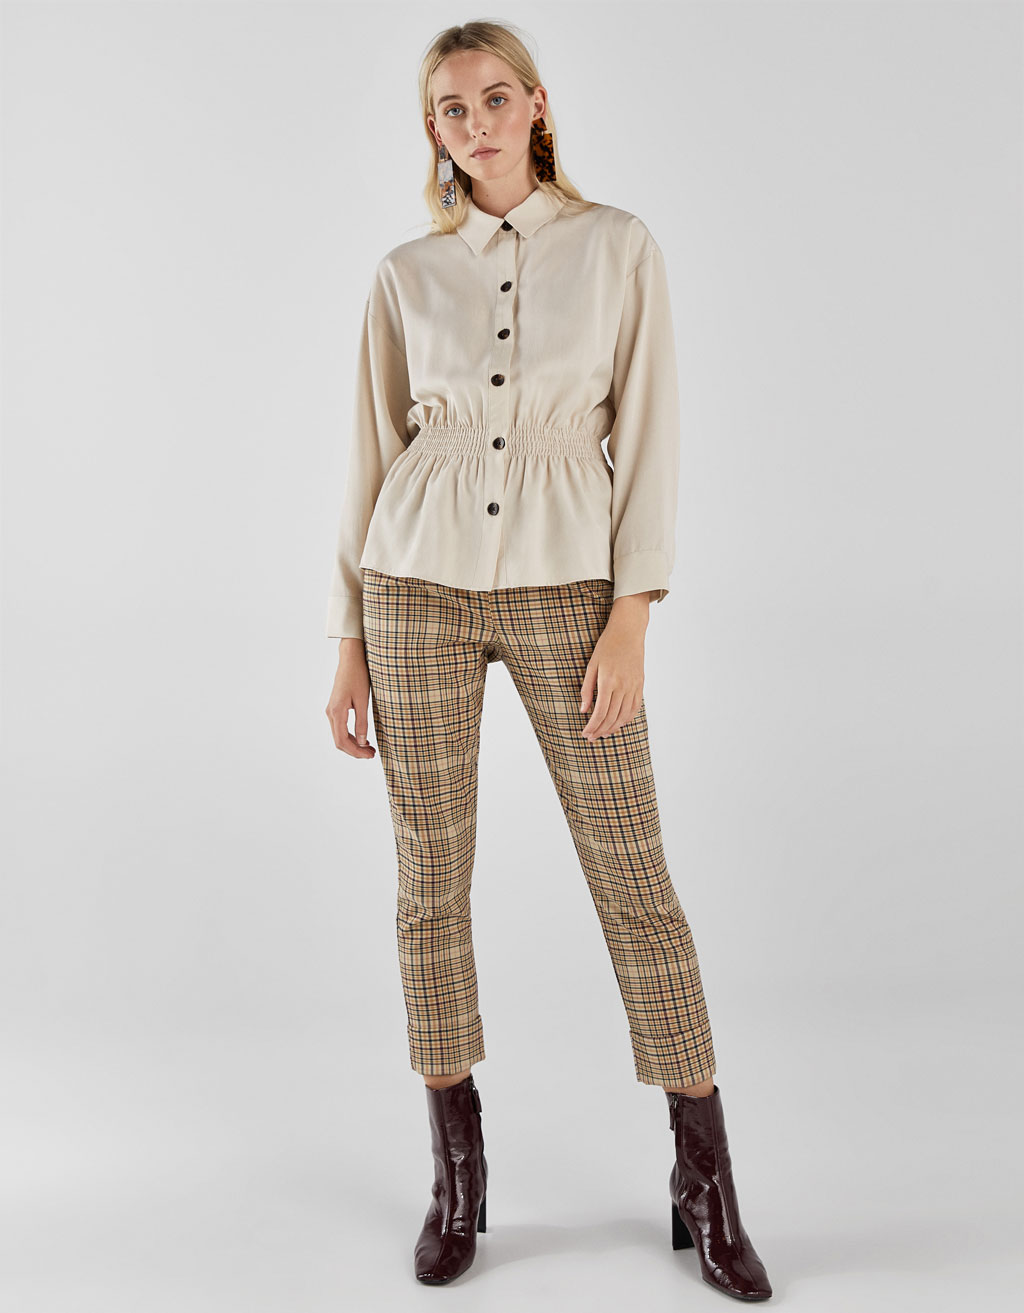 Tencel® shirt with a gathered waist